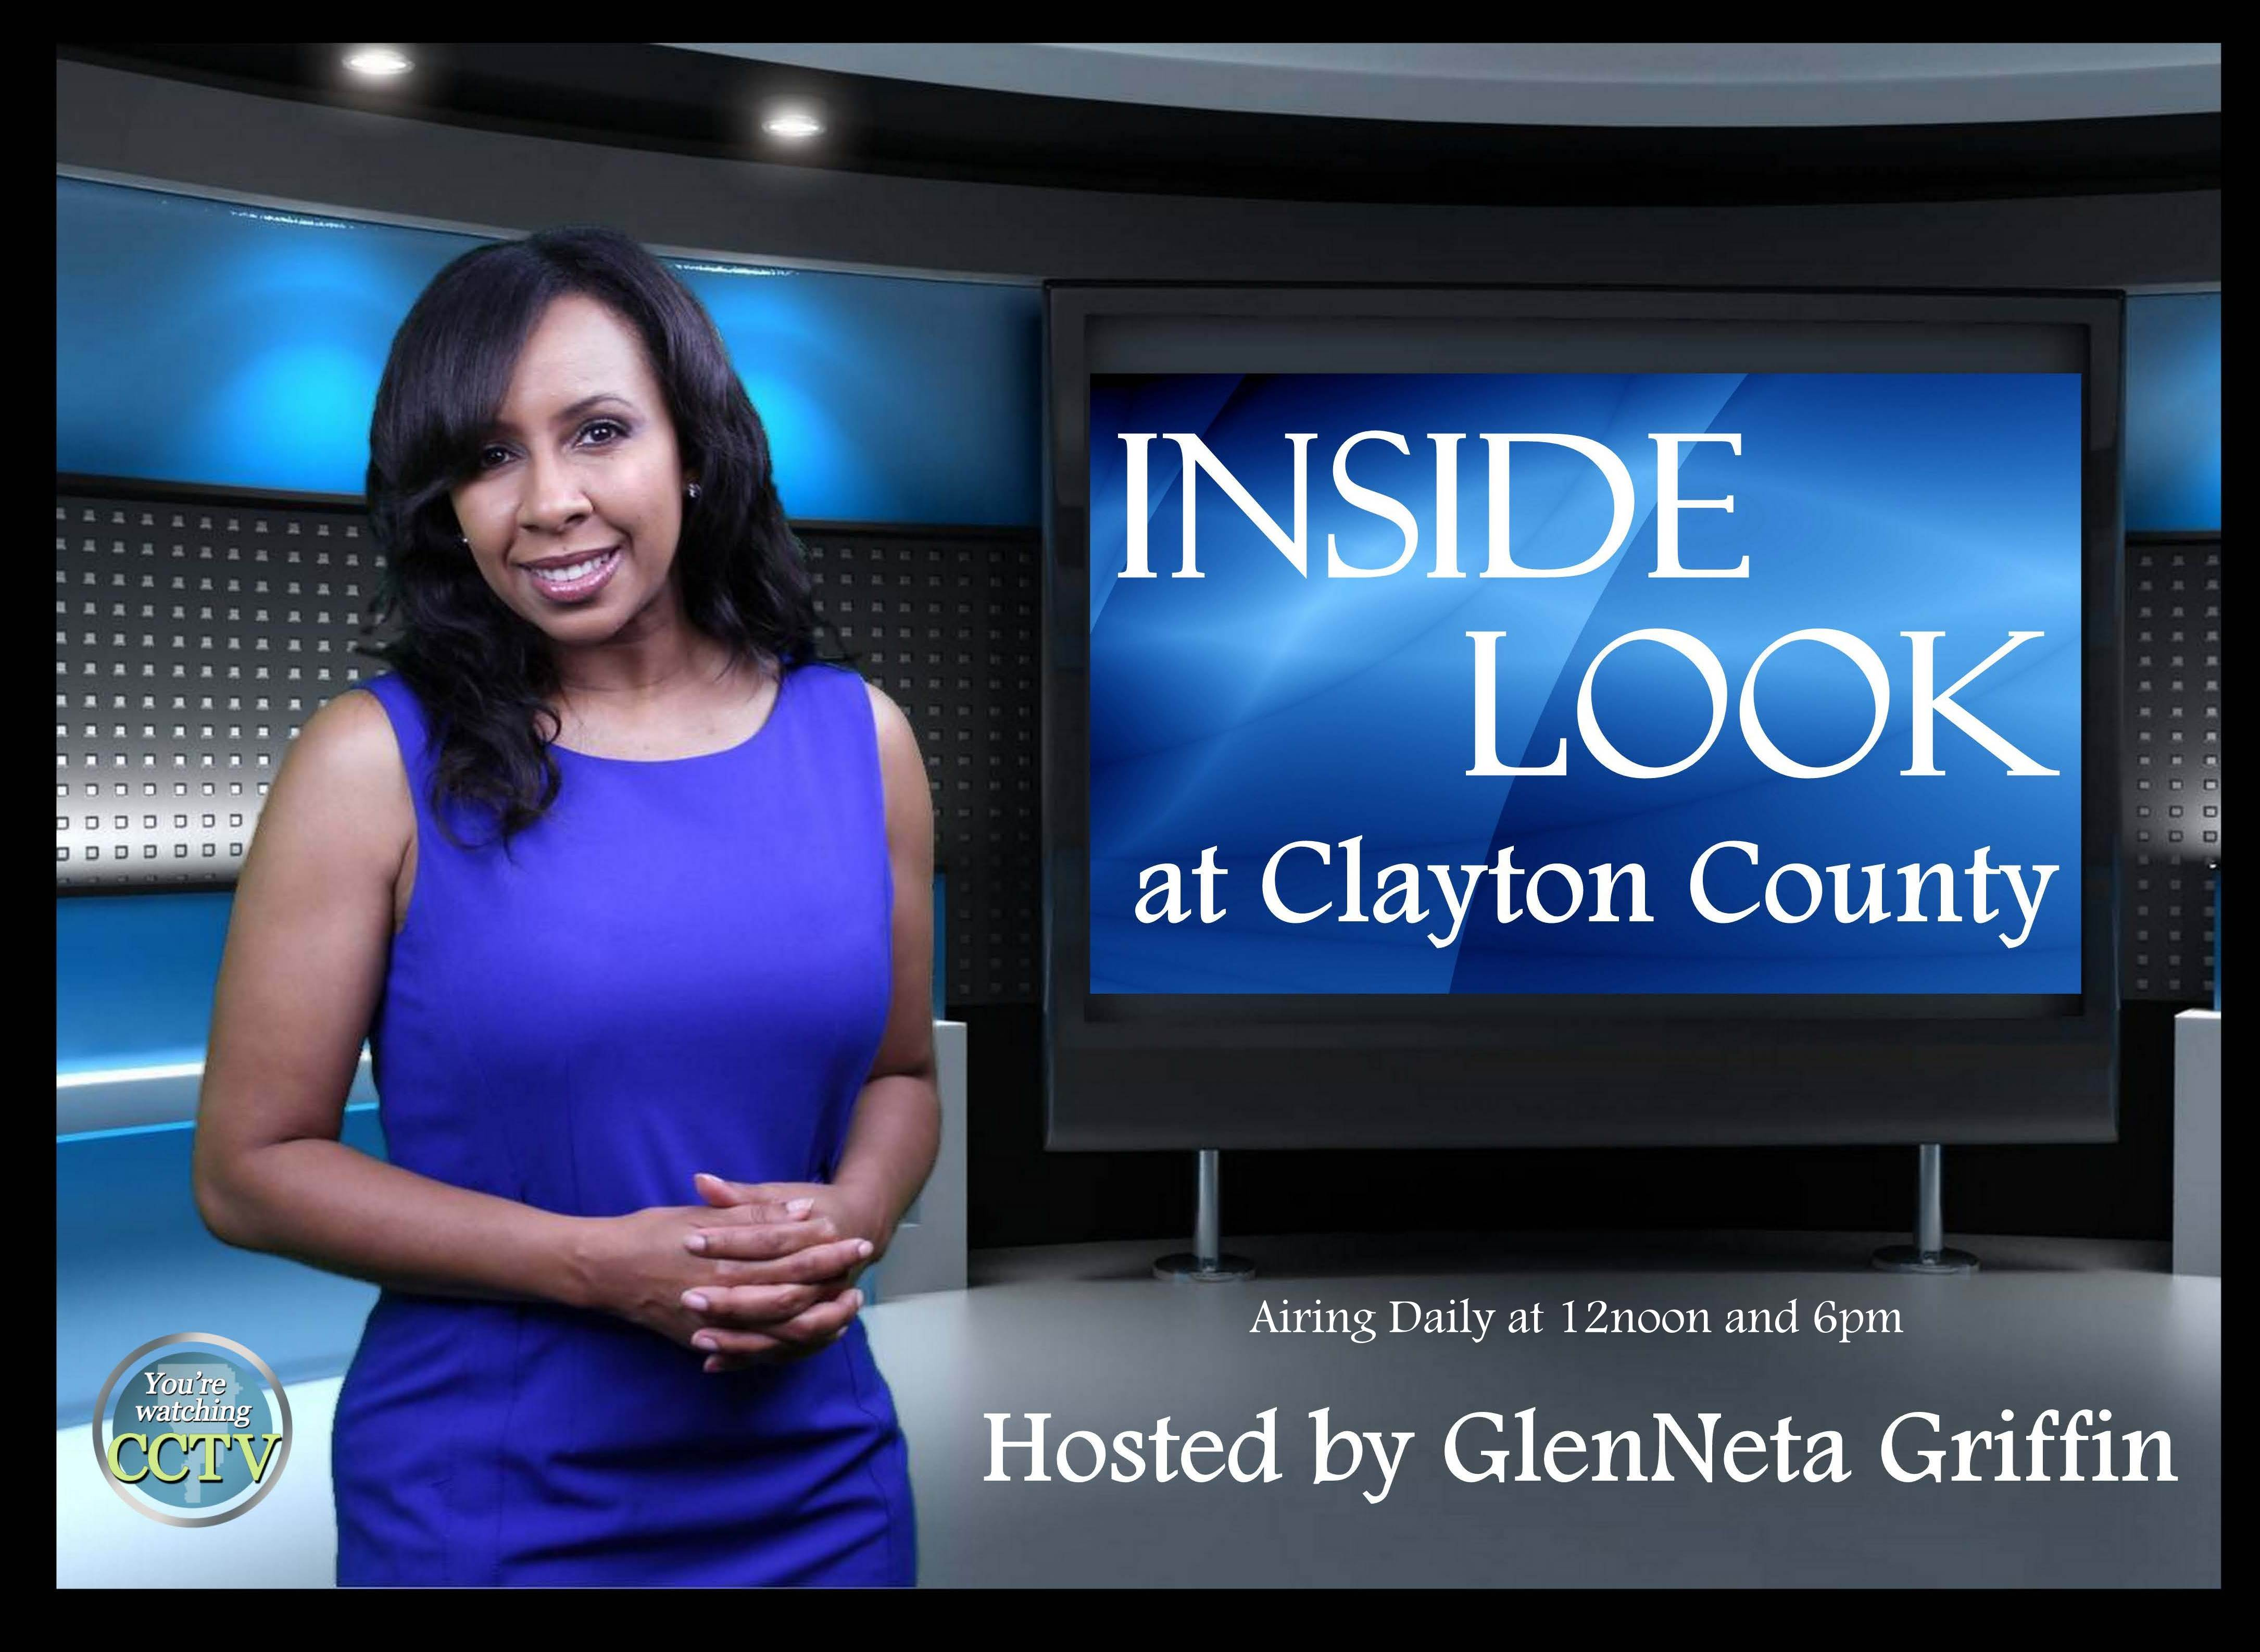 INSIDE LOOK at Clayton County with Host GlenNeta Griffin: Segment One